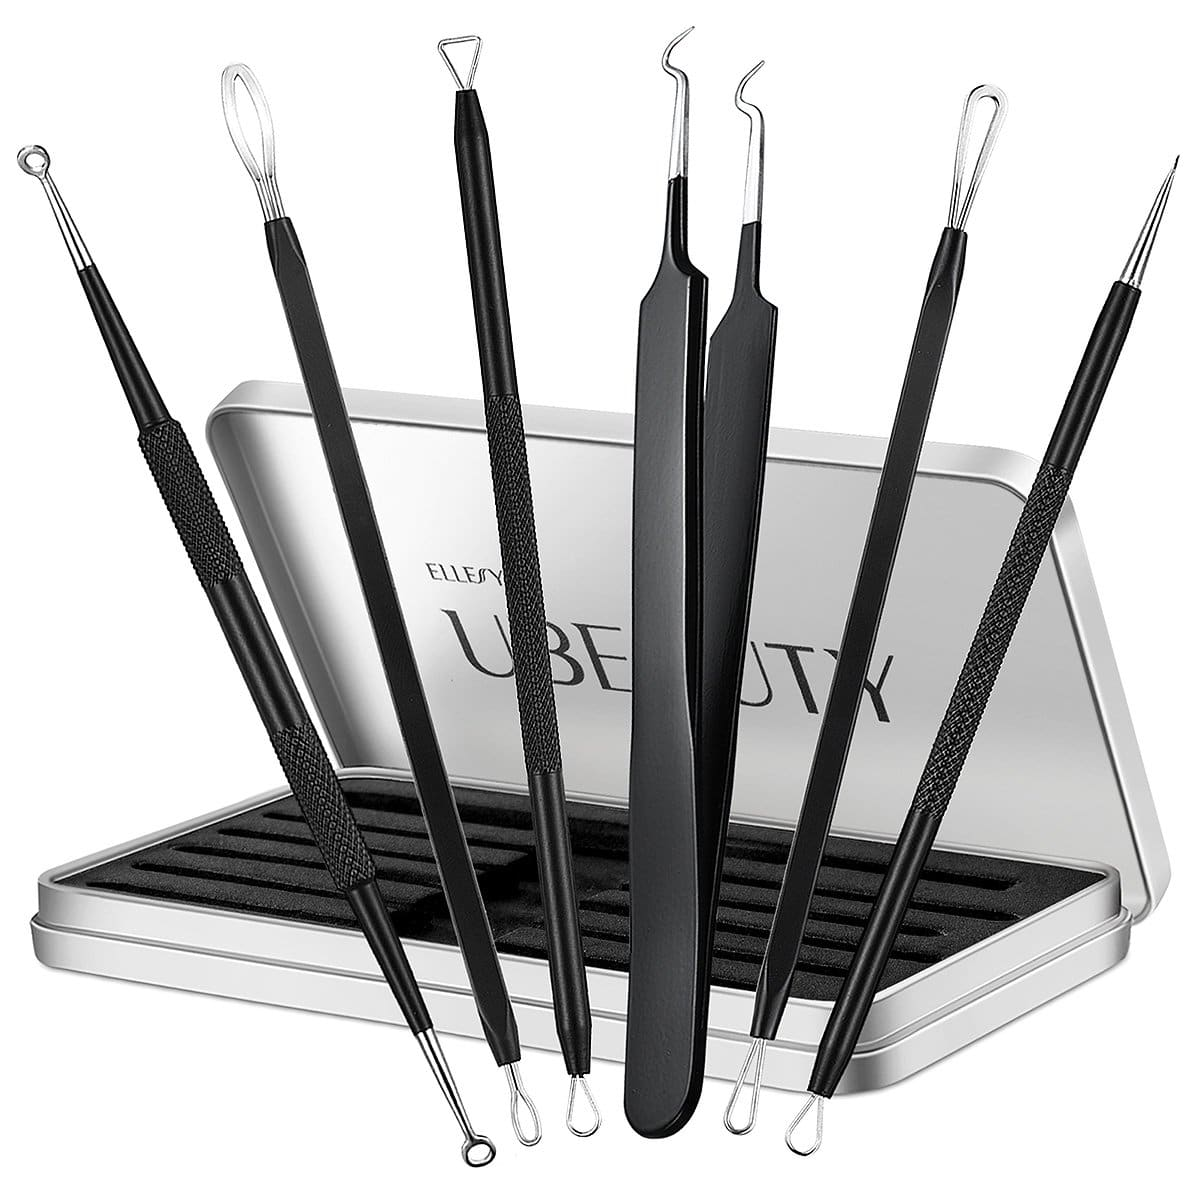 Ellesye Blackhead Removal tool 6 PCS Pimple Popper Tool